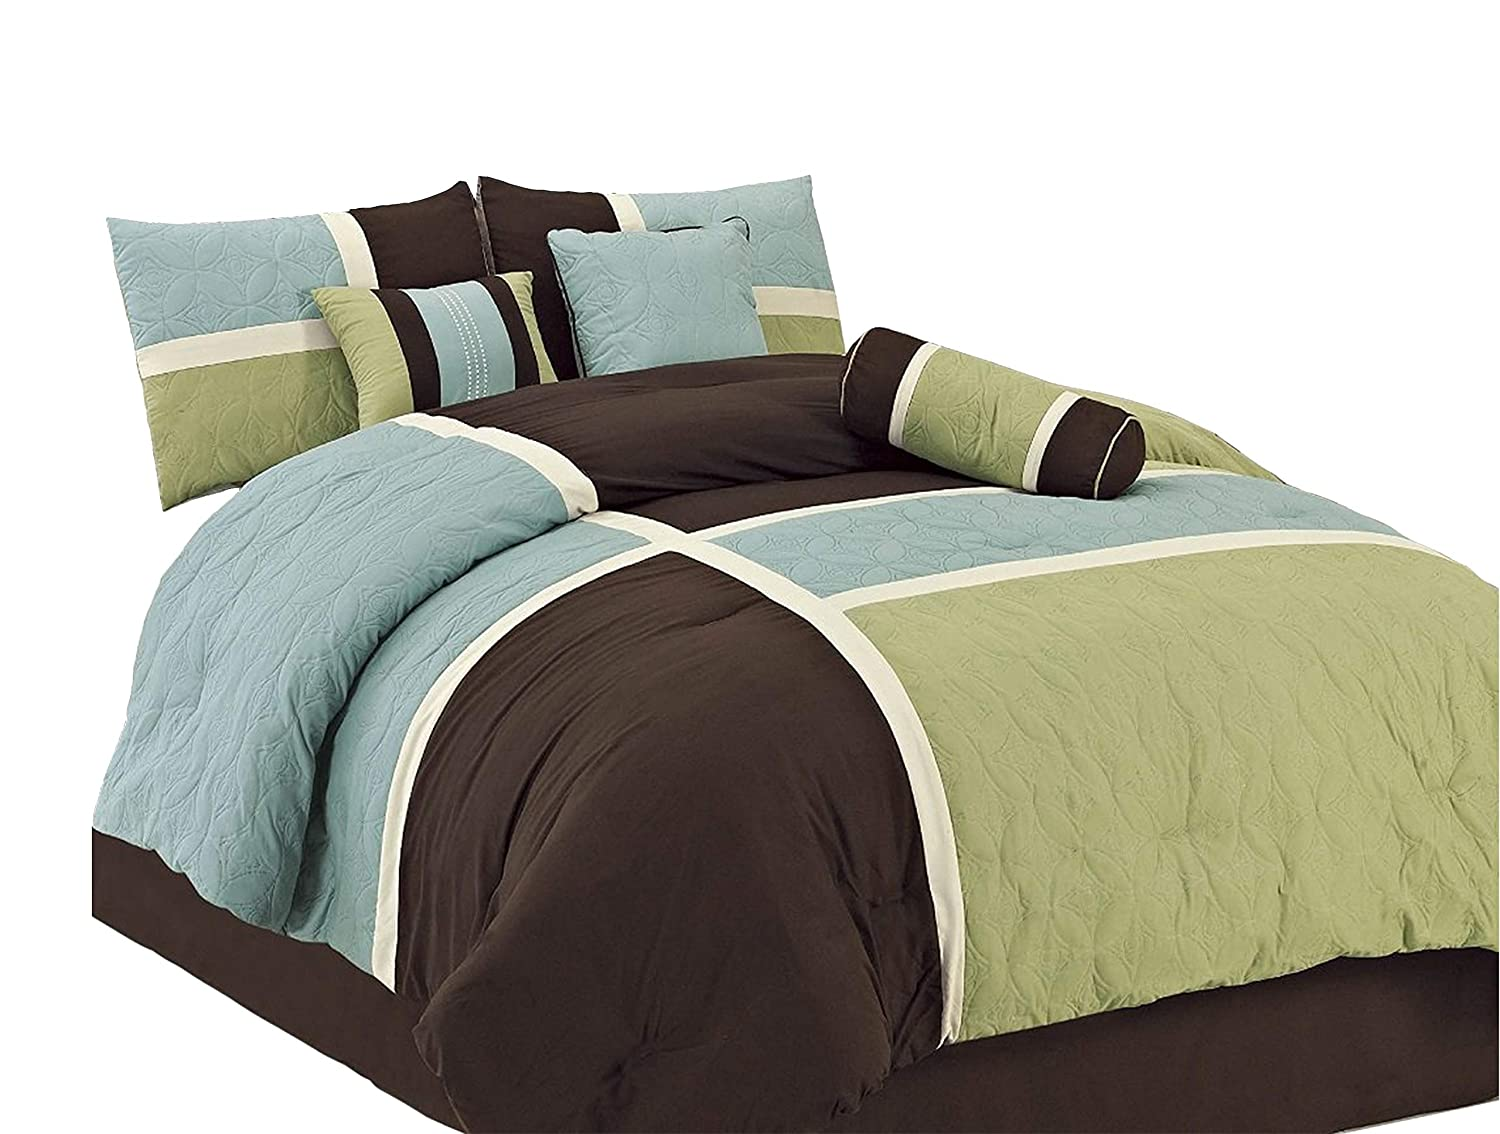 Chezmoi Collection 7-Piece Coffee Quilted Patchwork Comforter Set, King, Aqua Blue/Sage Green Green Living Group INC. Upland